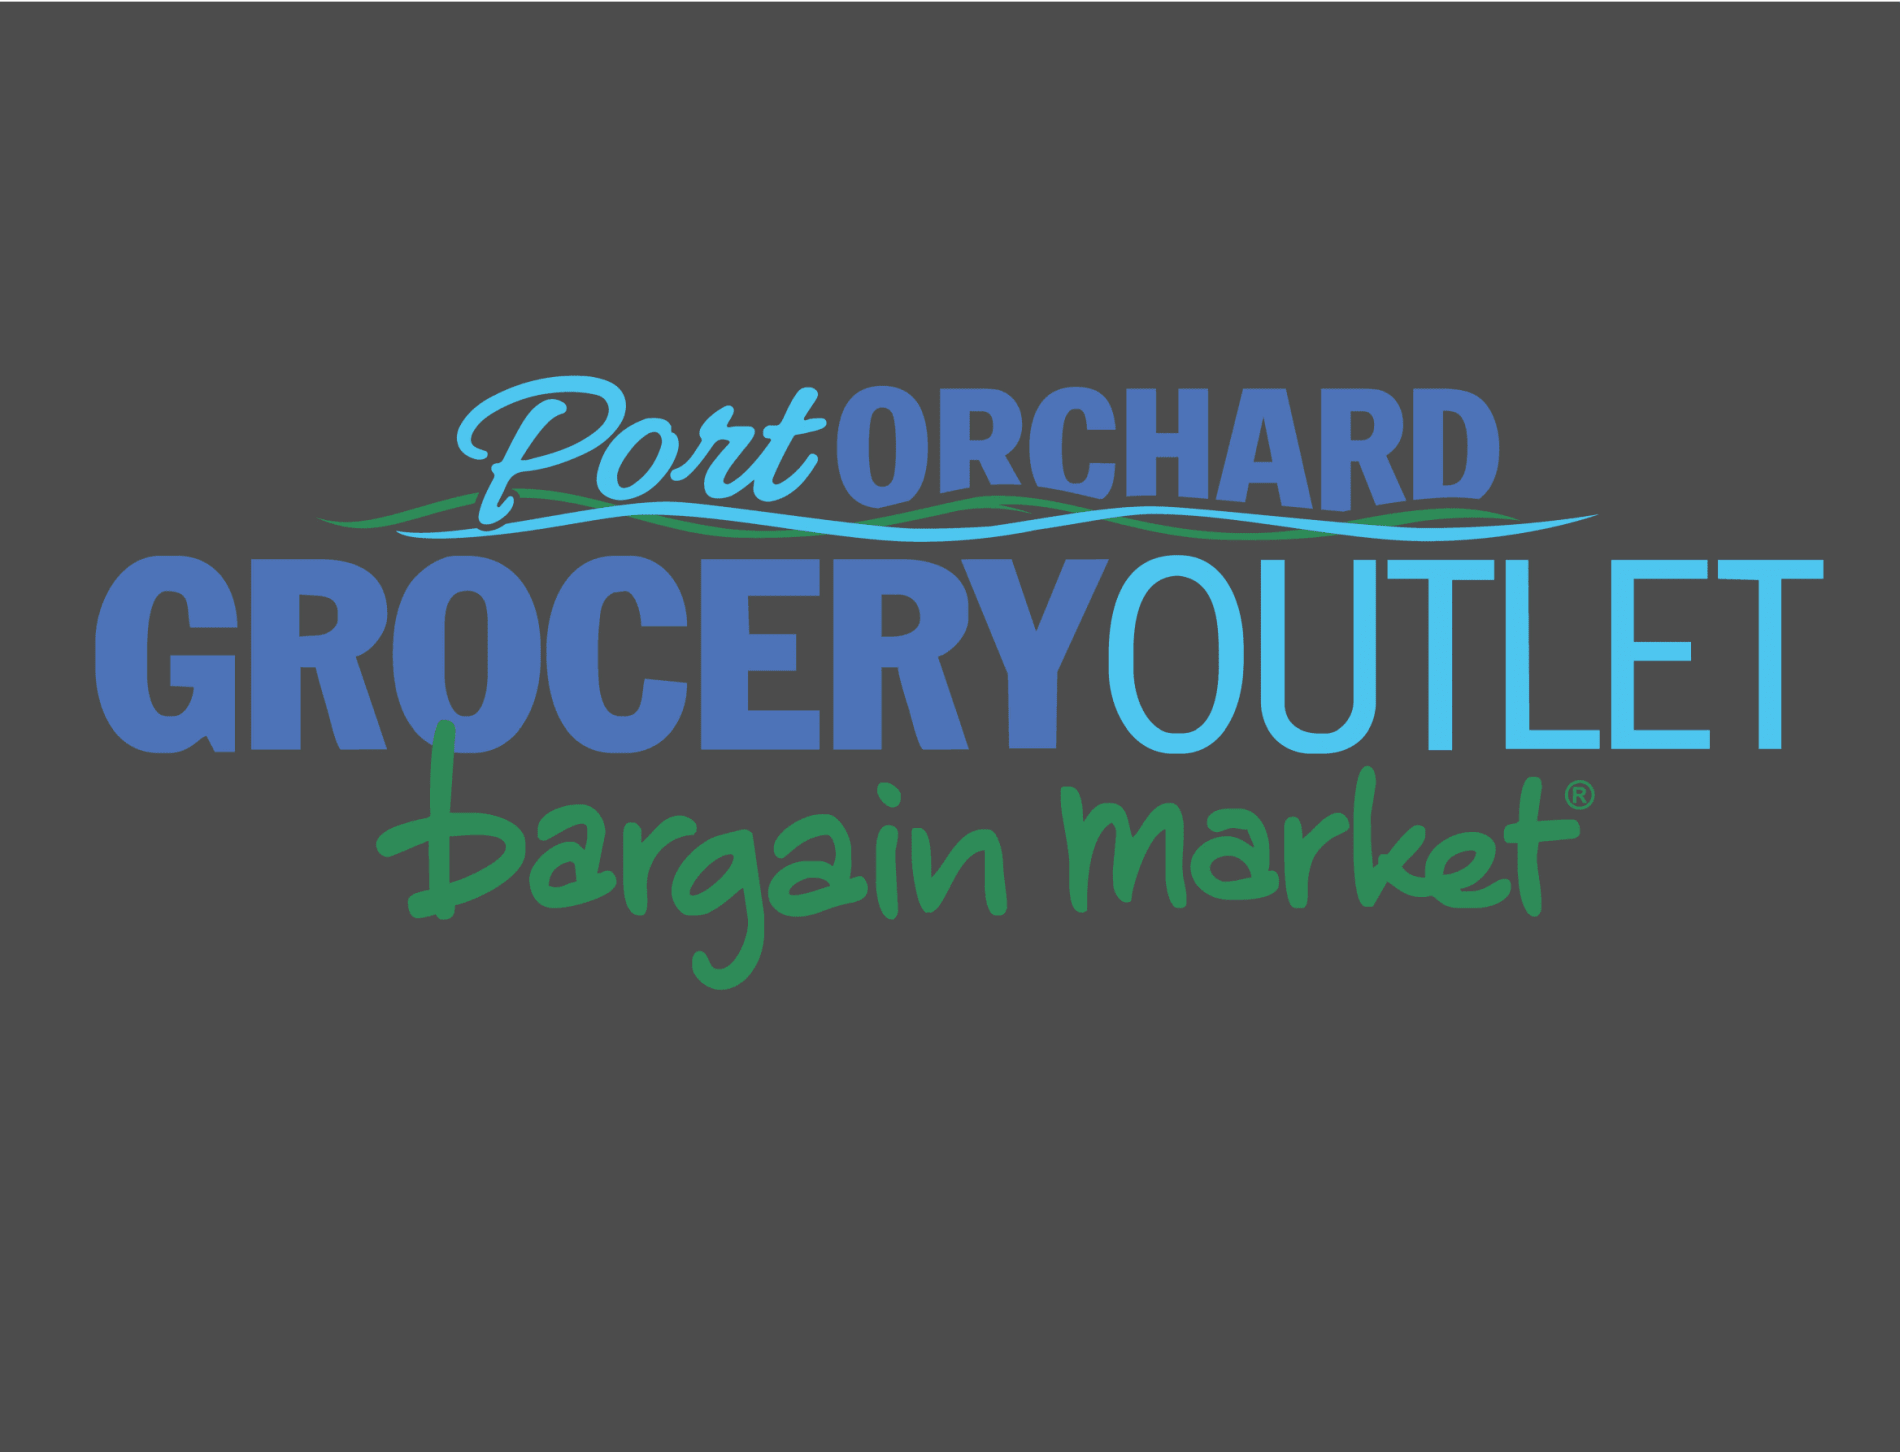 GroceryOutlet_Port-Orchard_GRY--1900.png